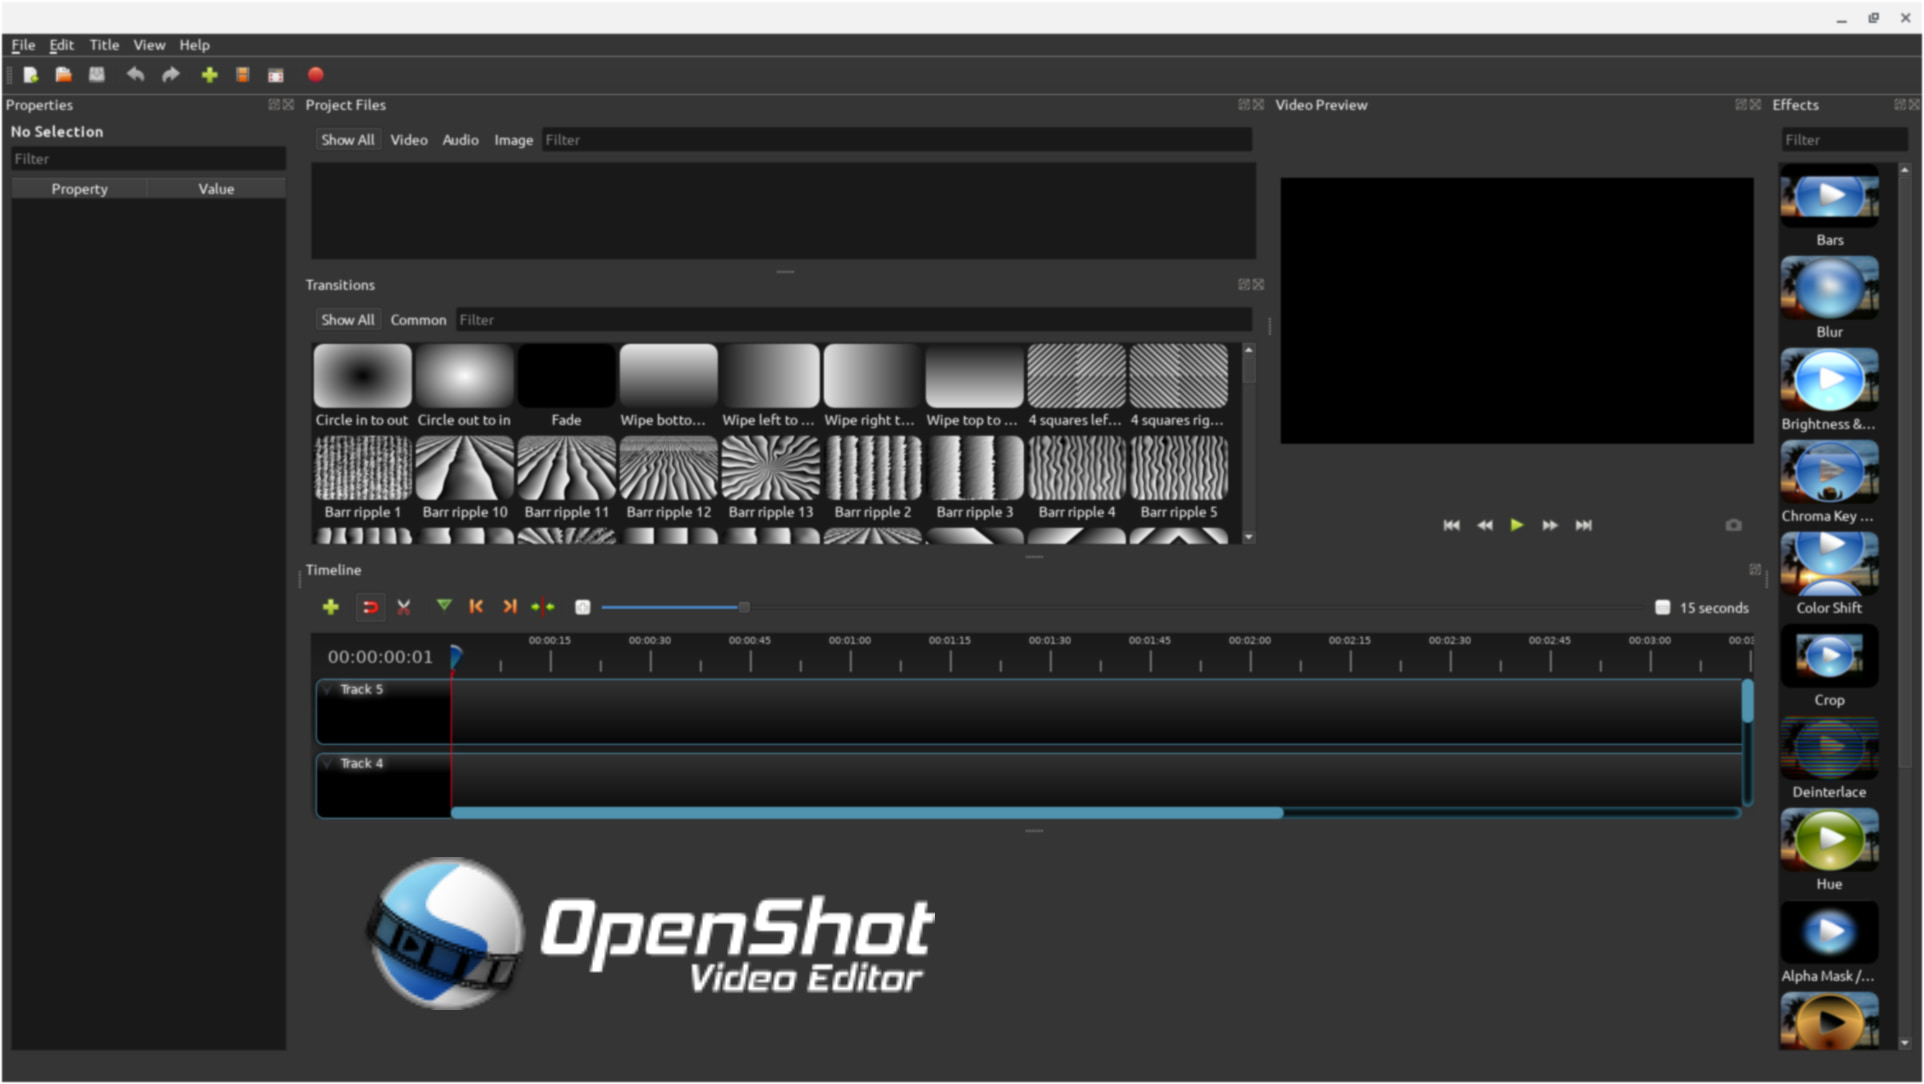 OpenShot brings official Linux video editor to Chromebooks